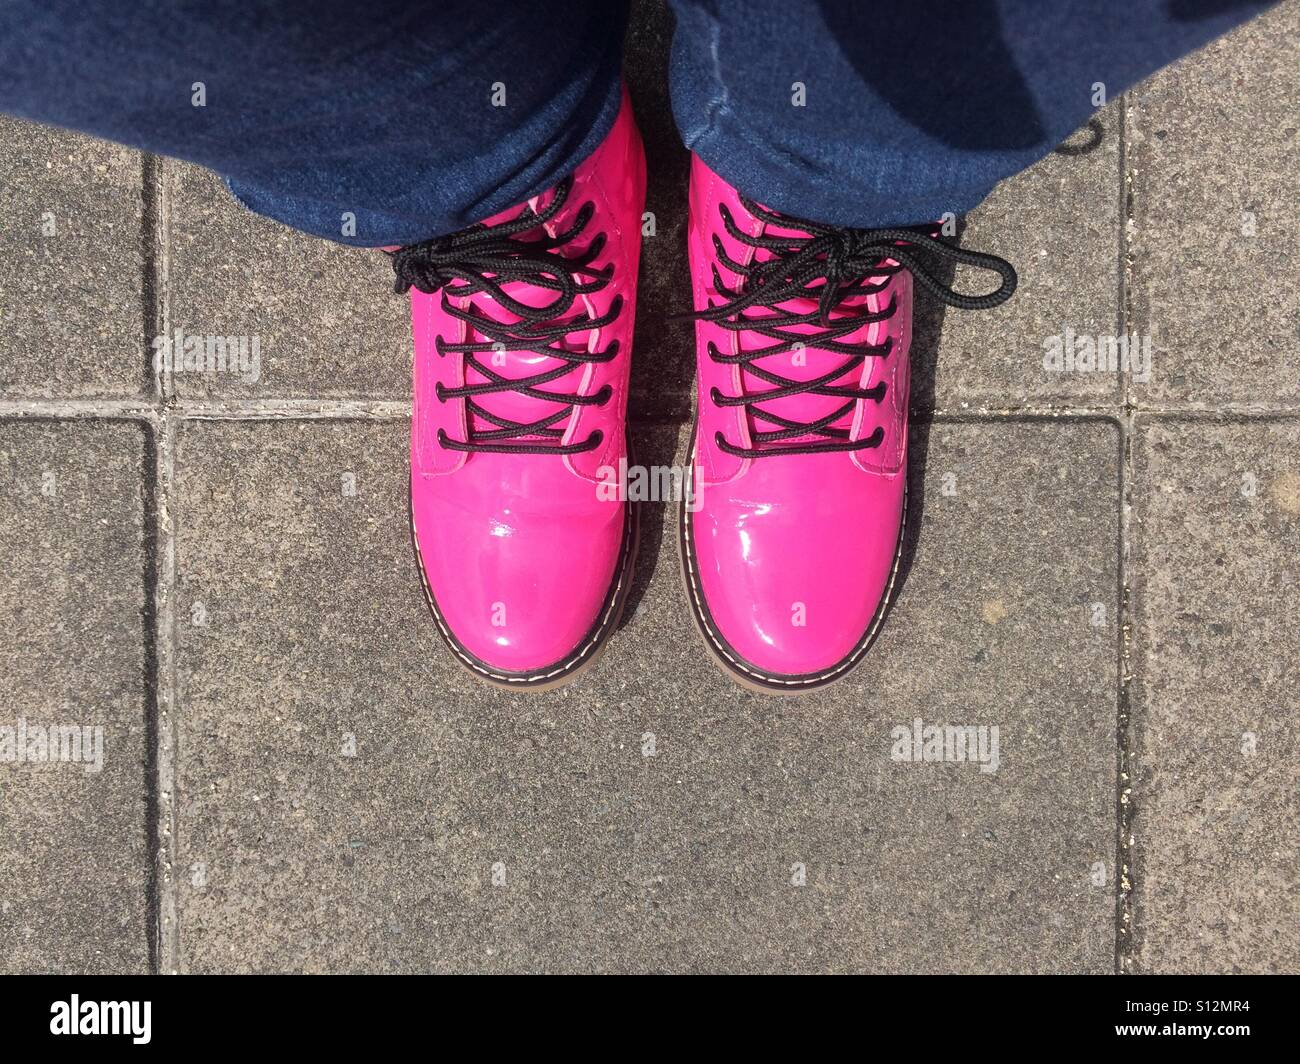 Neon pink shiny boots - Stock Image